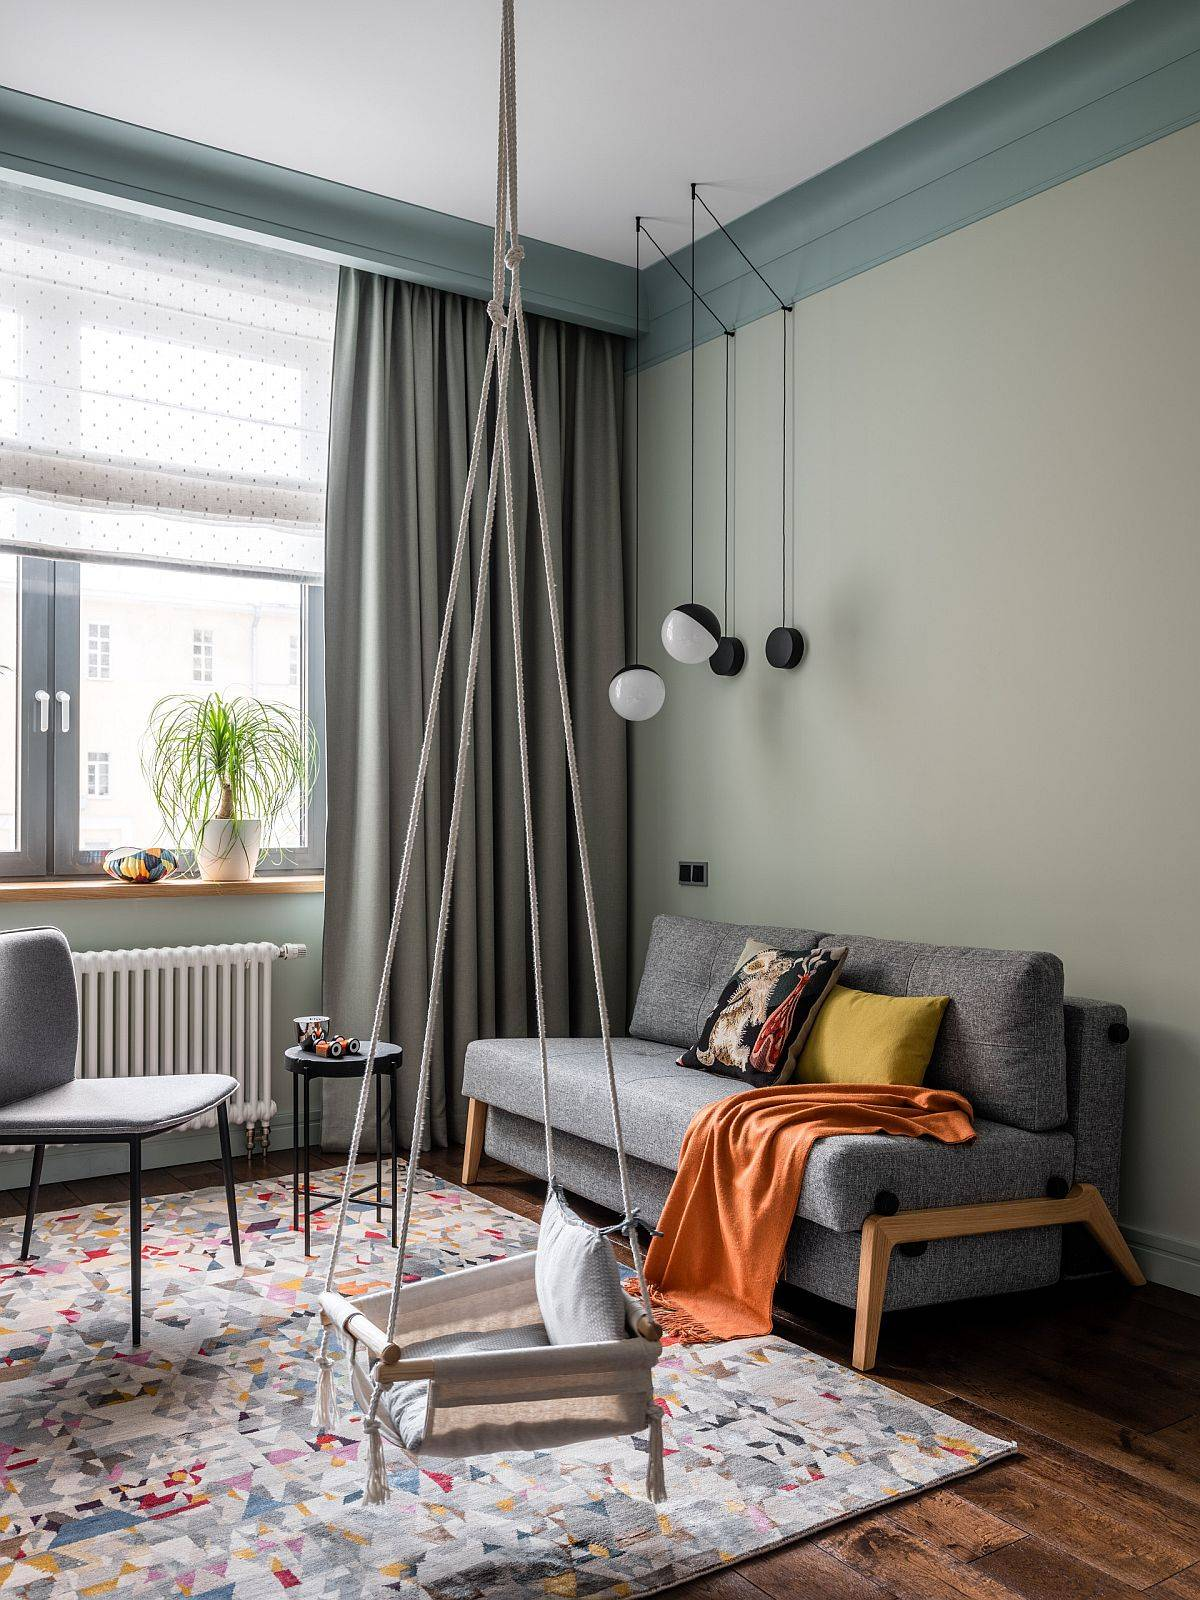 FInding-space-savvy-and-correct-decor-for-the-small-living-room-79362